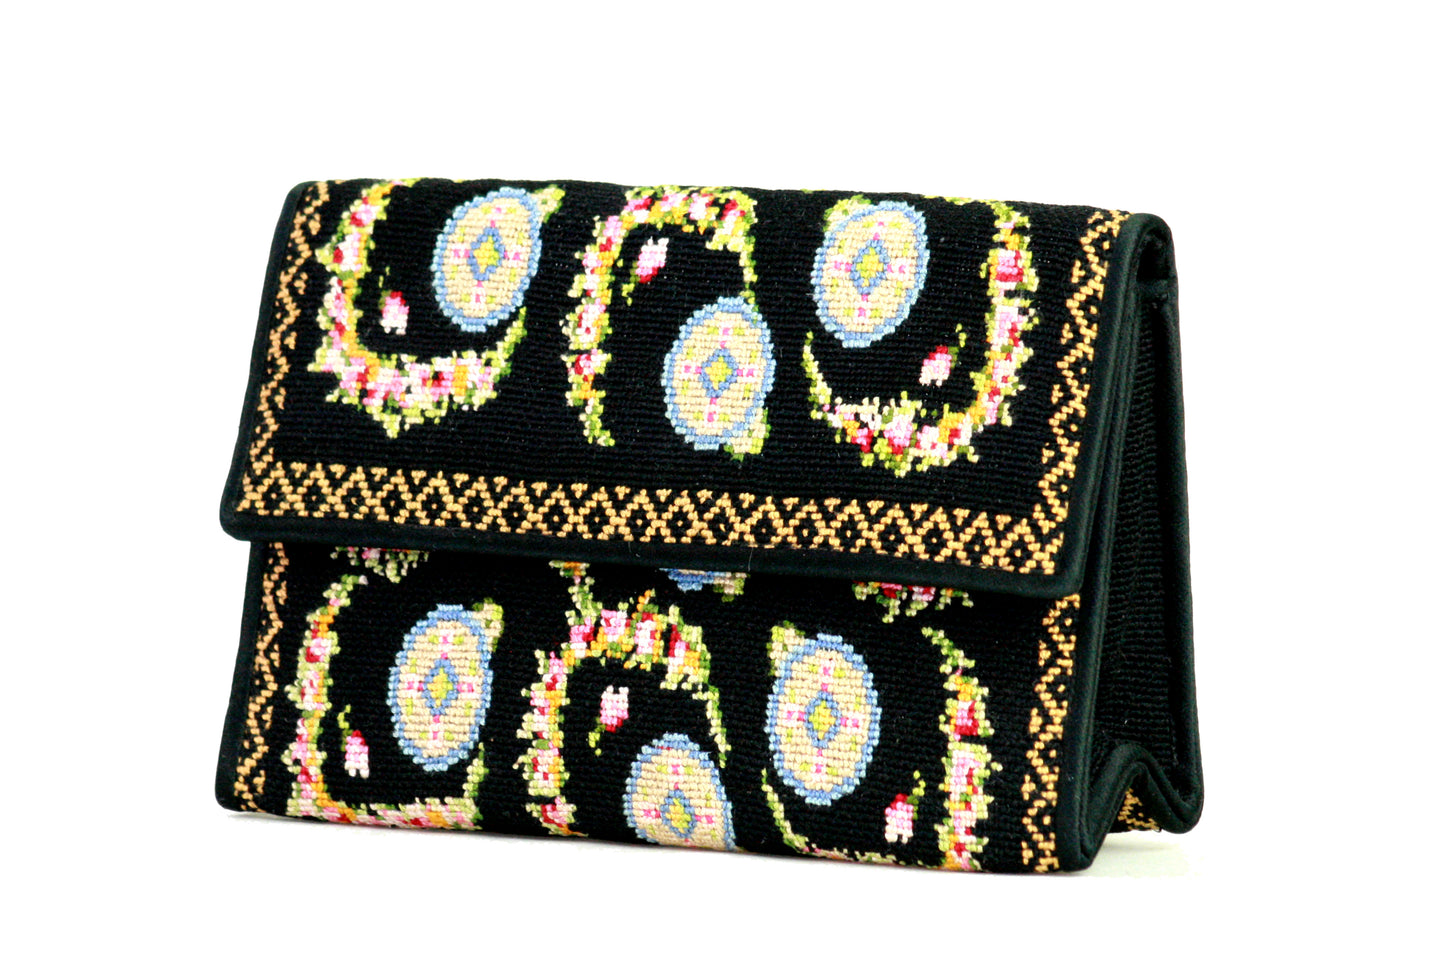 LOEWE embroidery evening handbag